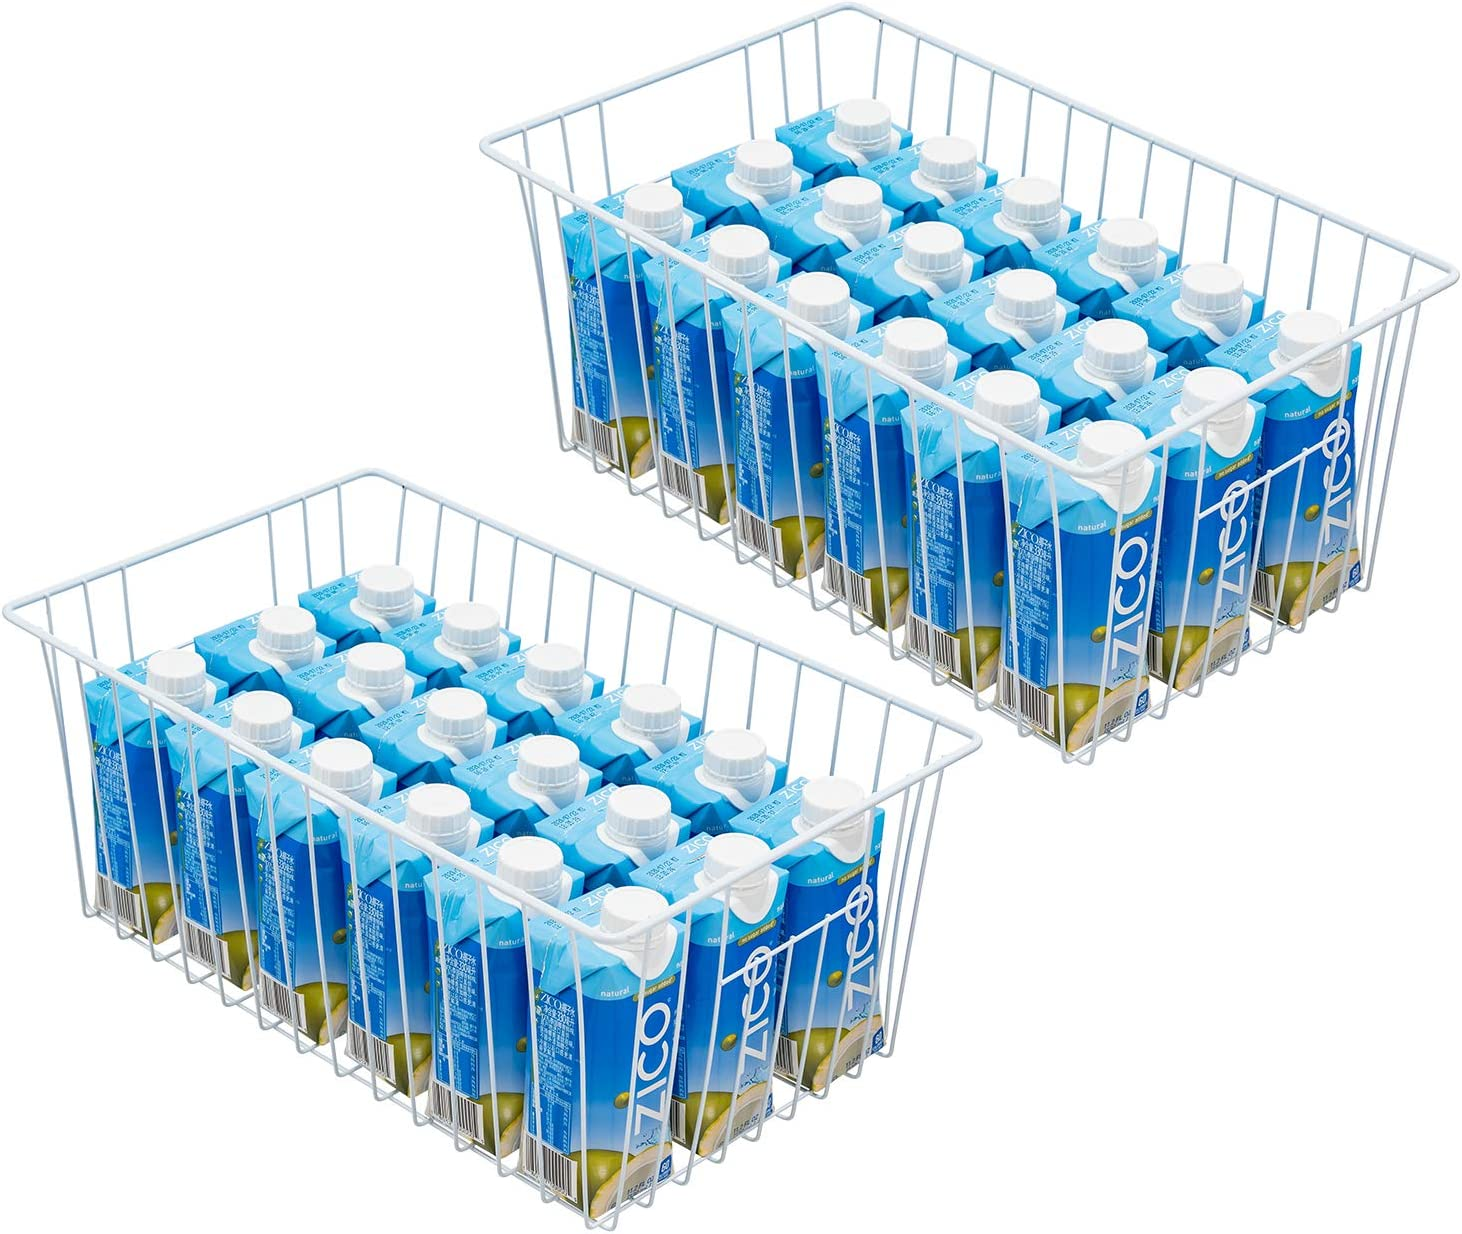 16inch Freezer Wire Storage Organizer Baskets, Household Refrigerator Bins with Built-in Handles for Cabinet, Pantry, Closet, Bedroom (2)